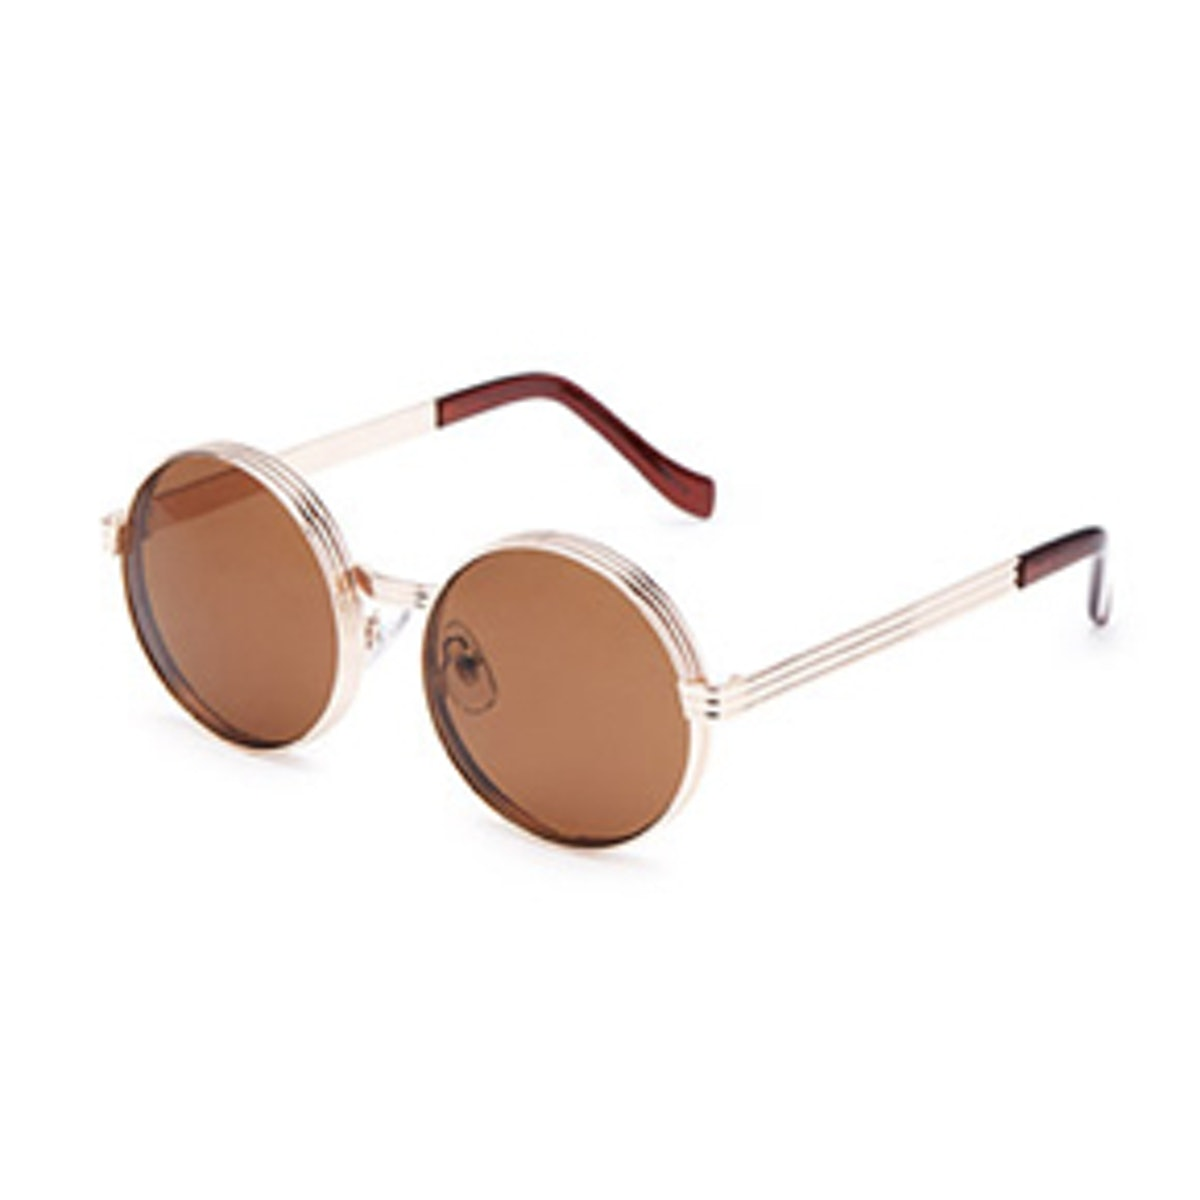 Stacked Metal- Frame Round Sunglasses